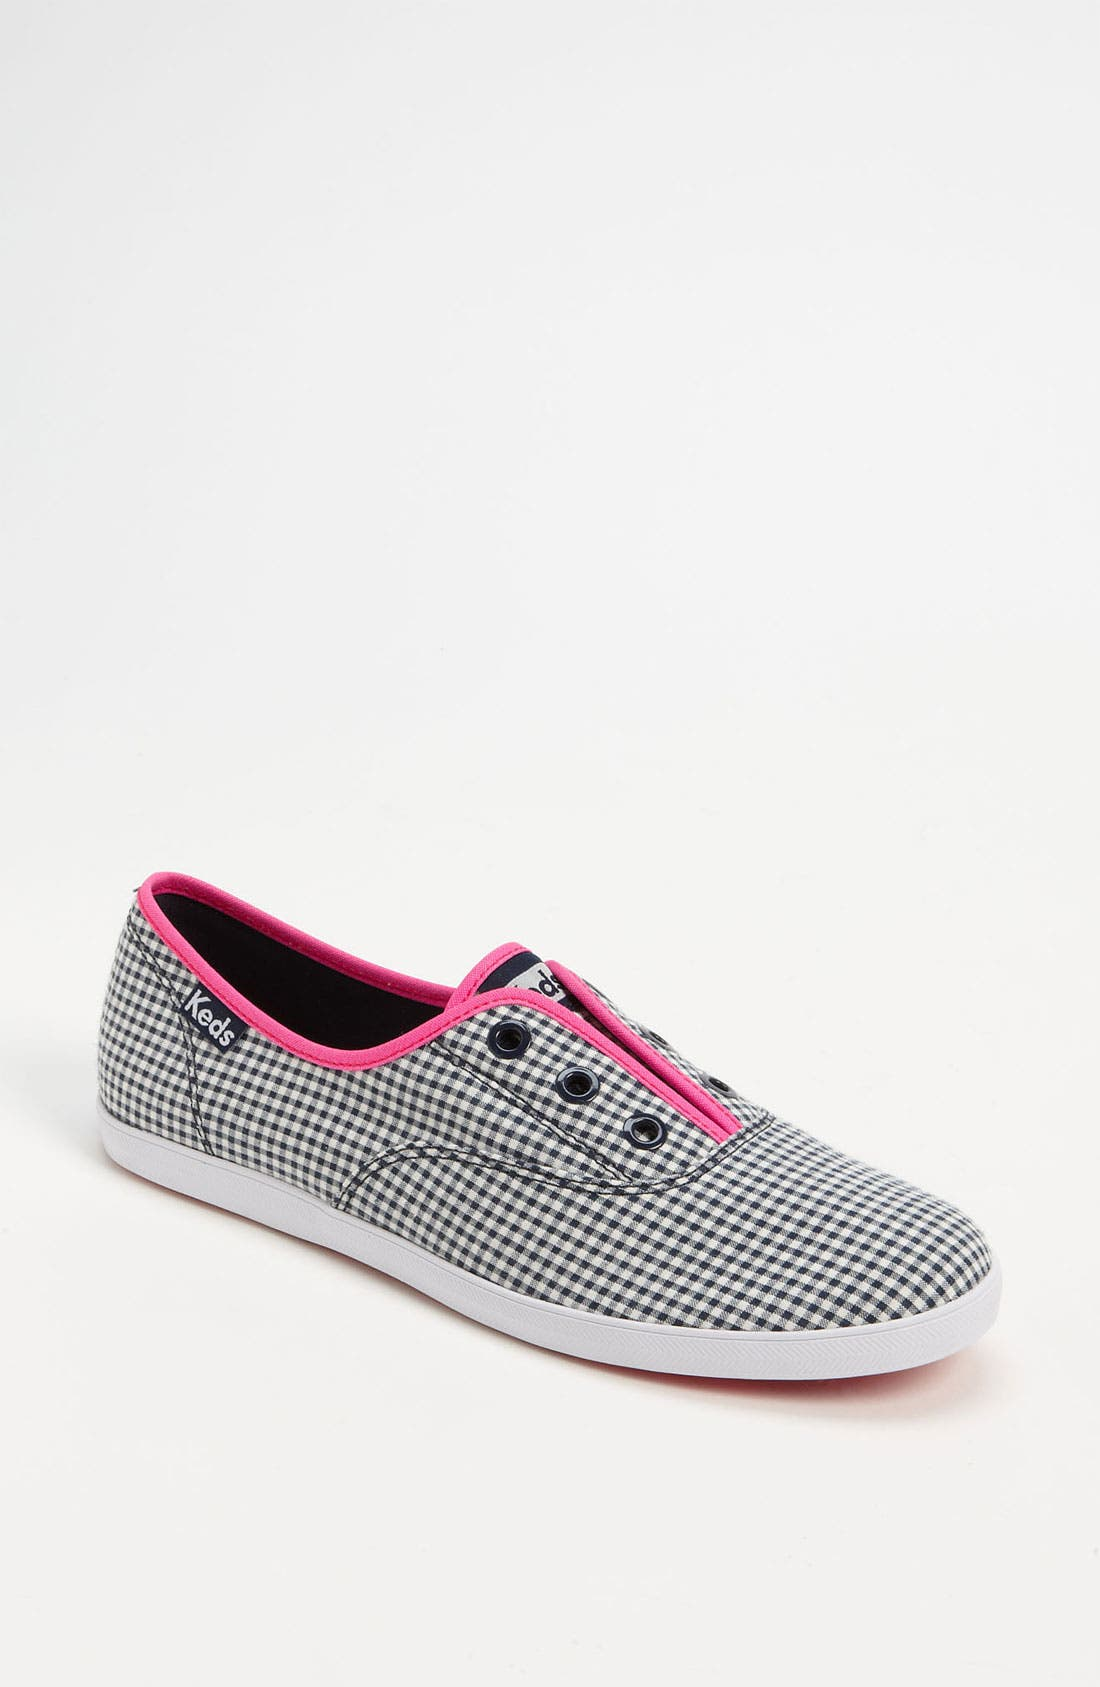 Alternate Image 1 Selected - Keds® 'Rookie' Sneaker (Women)